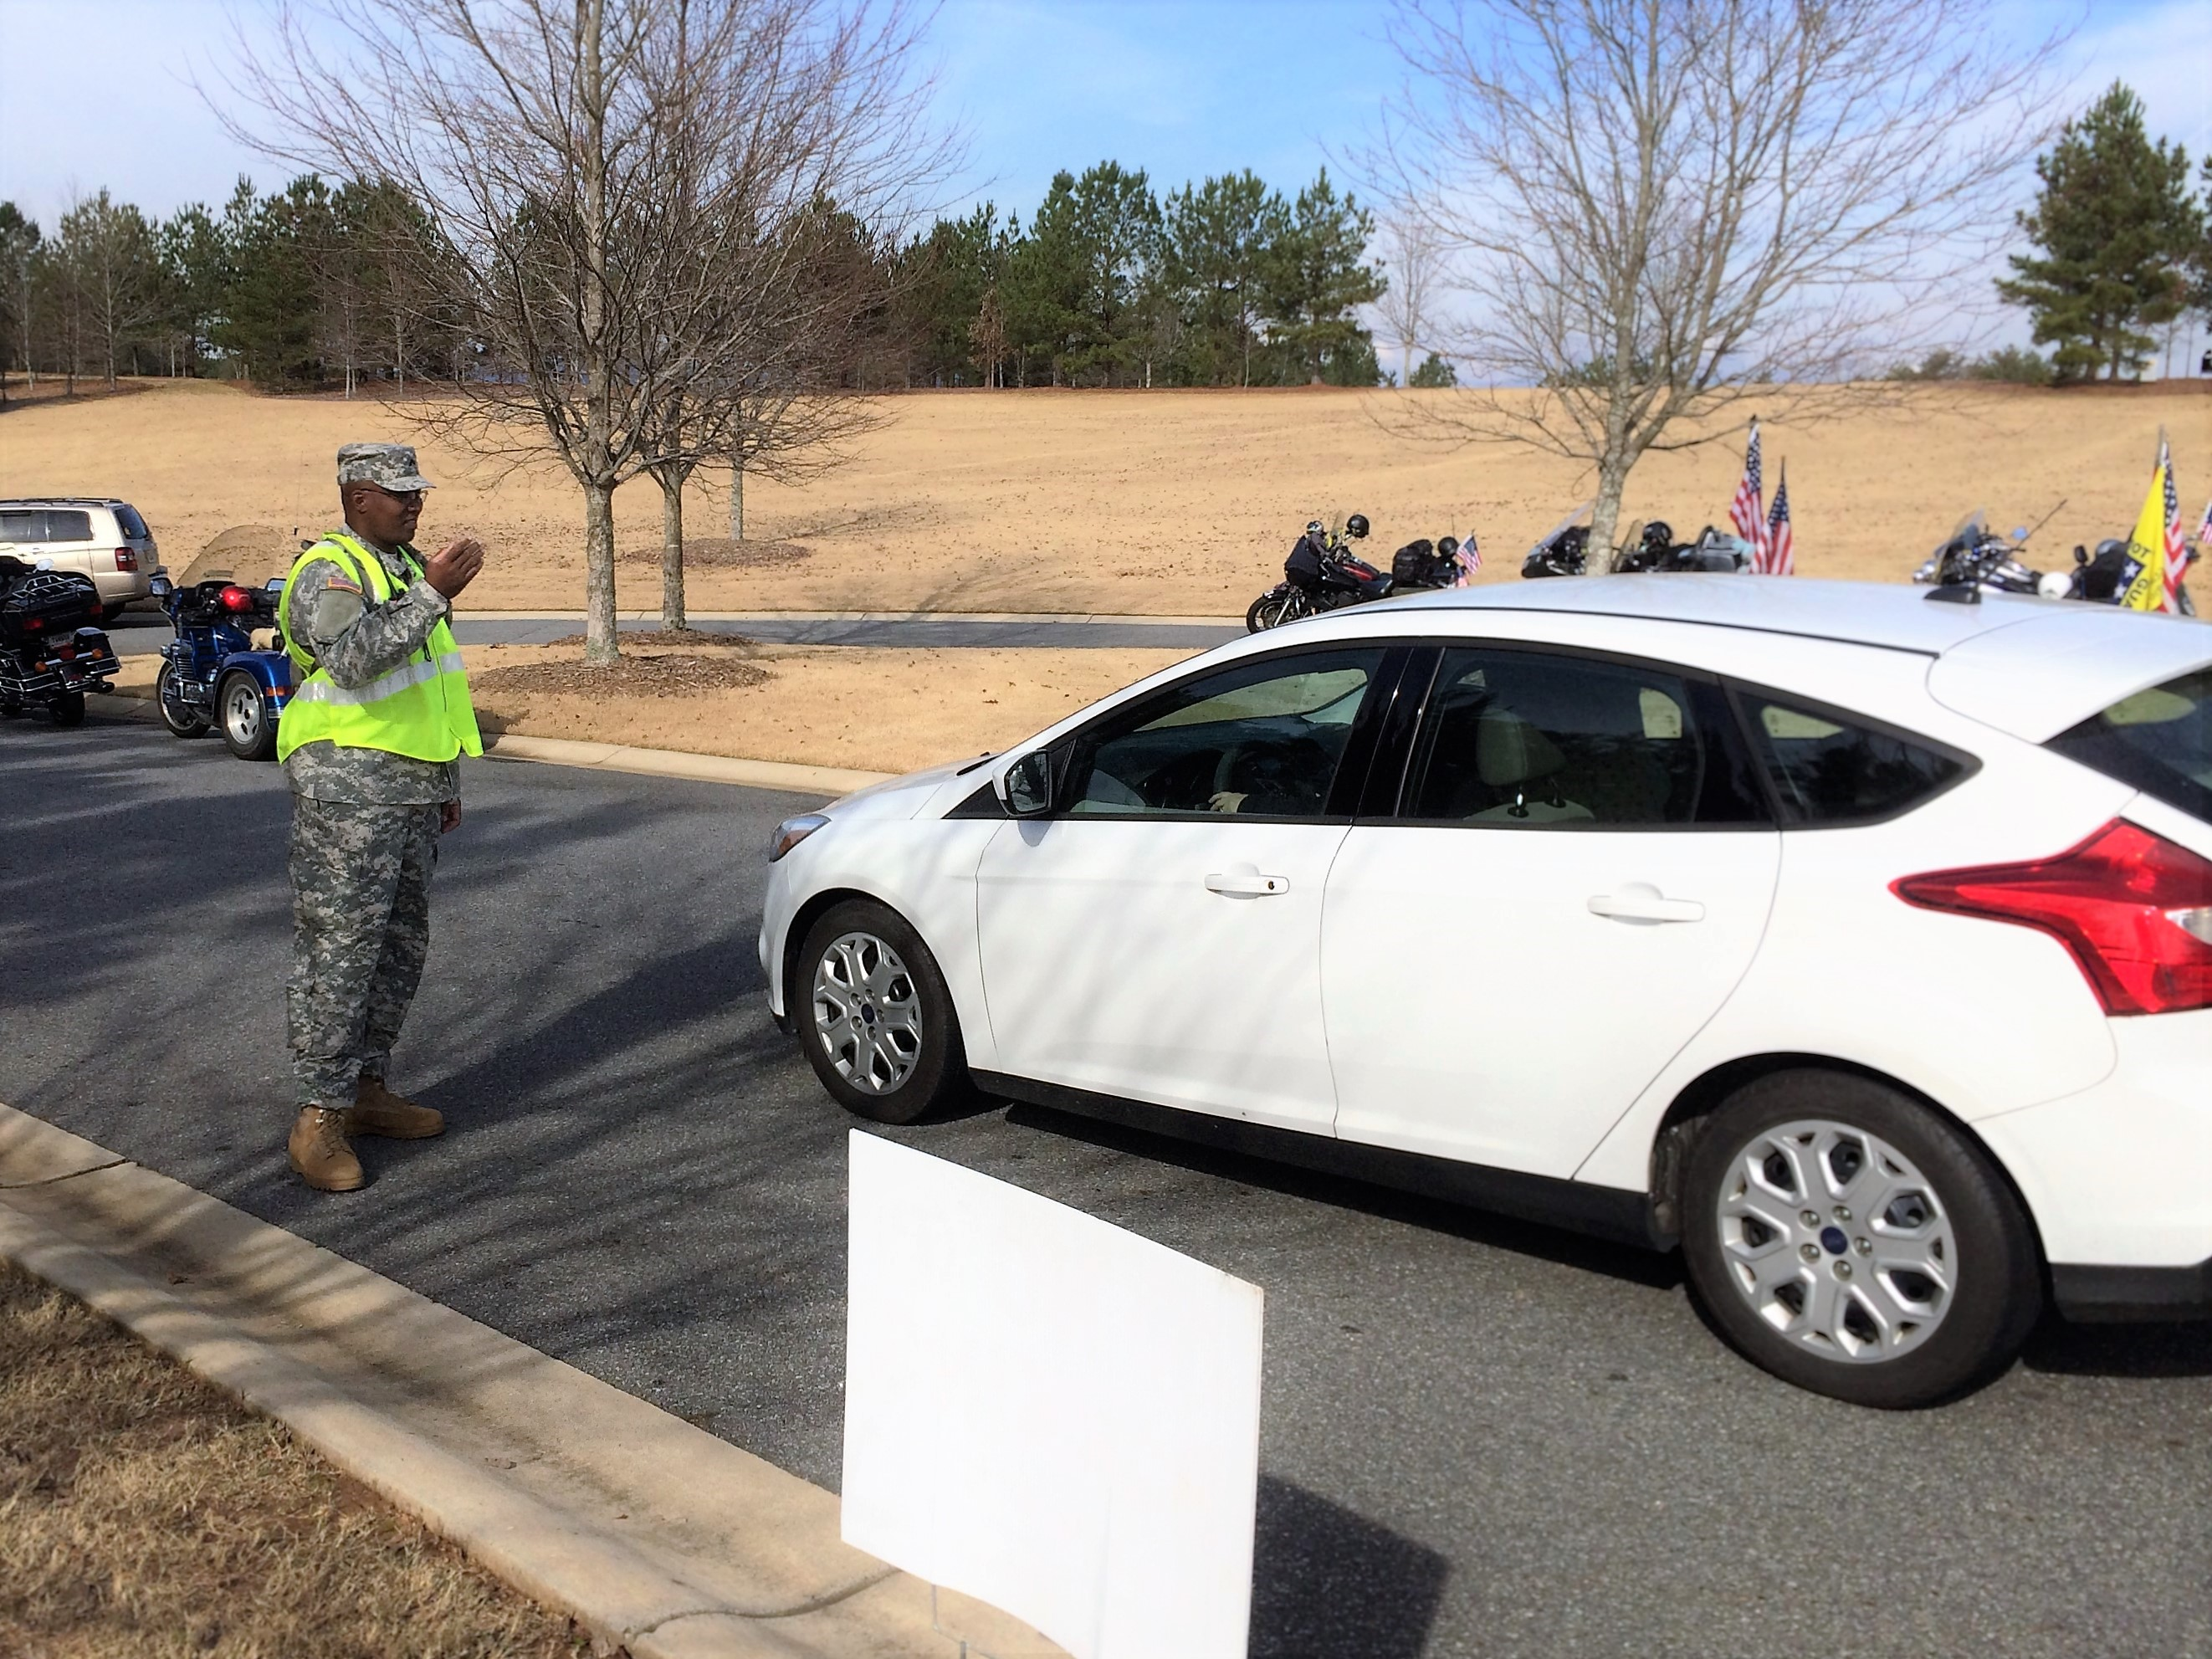 GEORGIA NATIONAL CEMETERY, Canton, Georgia, December 12, 2015 – Cpl. Robert Williams from 1st Brigade directs traffic during the event. (Georgia State Defense Force photo by Pvt. Michael Chapman, Public Affairs Office)